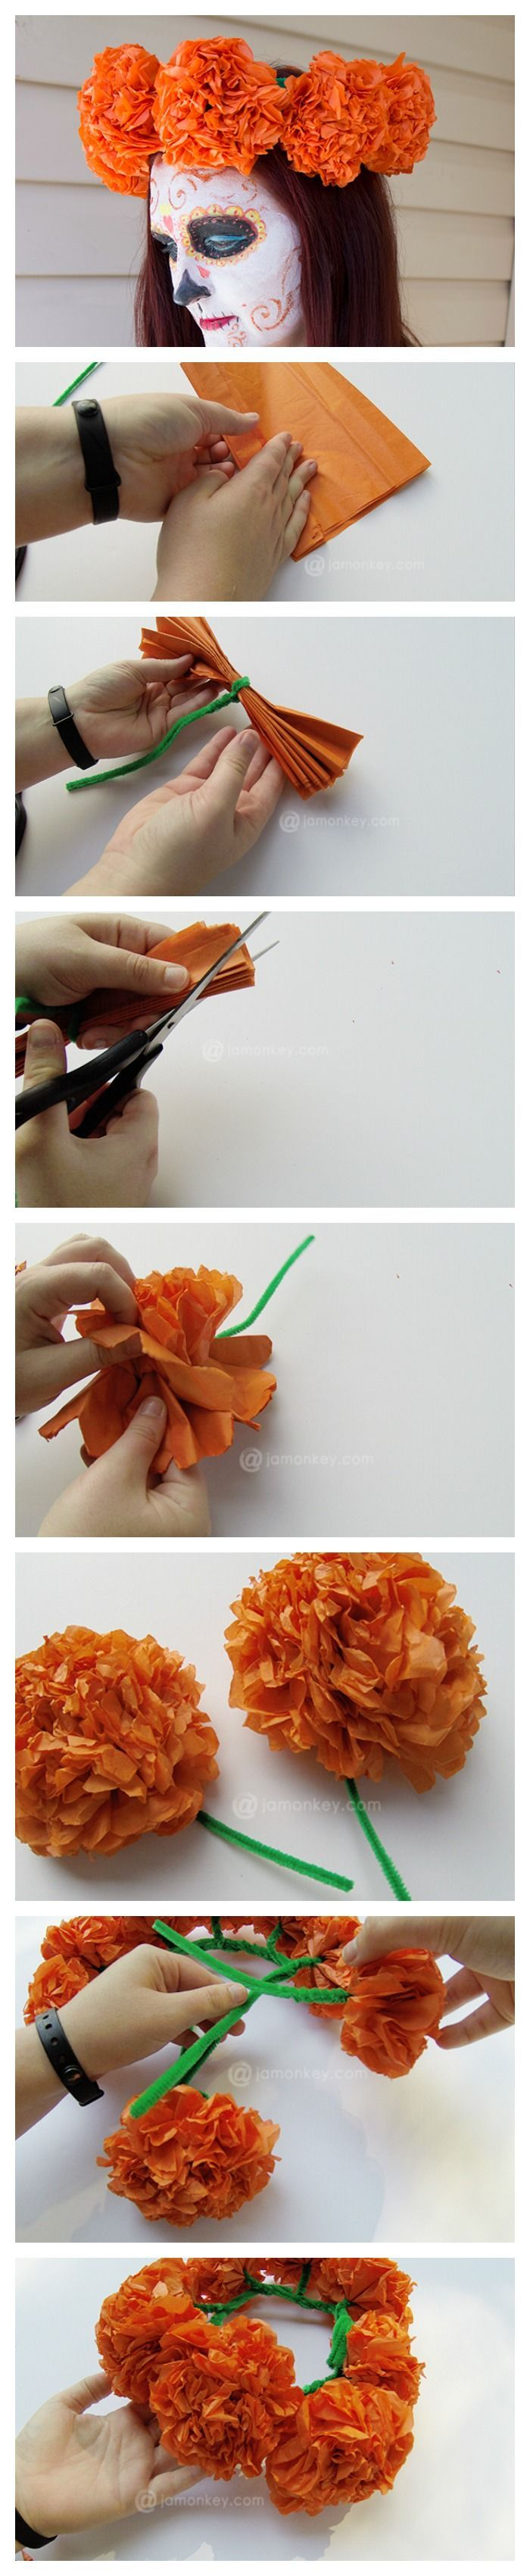 Paper Mexican Marigold Flower Headpiece Craft for Dia De Los Muertos                                                                                                                                                                                 More